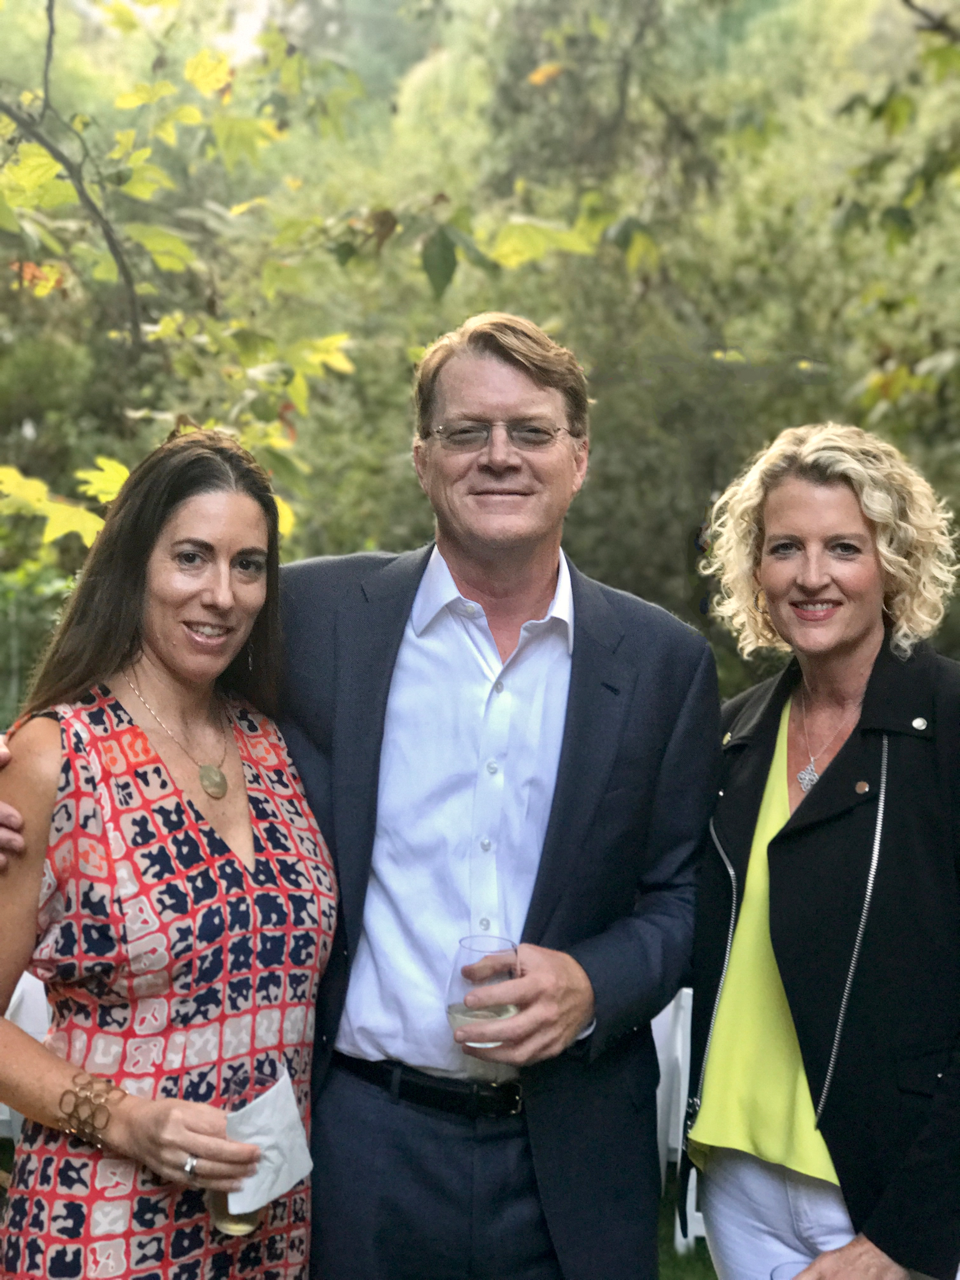 Angeles Art Fund Founders: Marta Ferro, Jon Foster and Victoria Burns